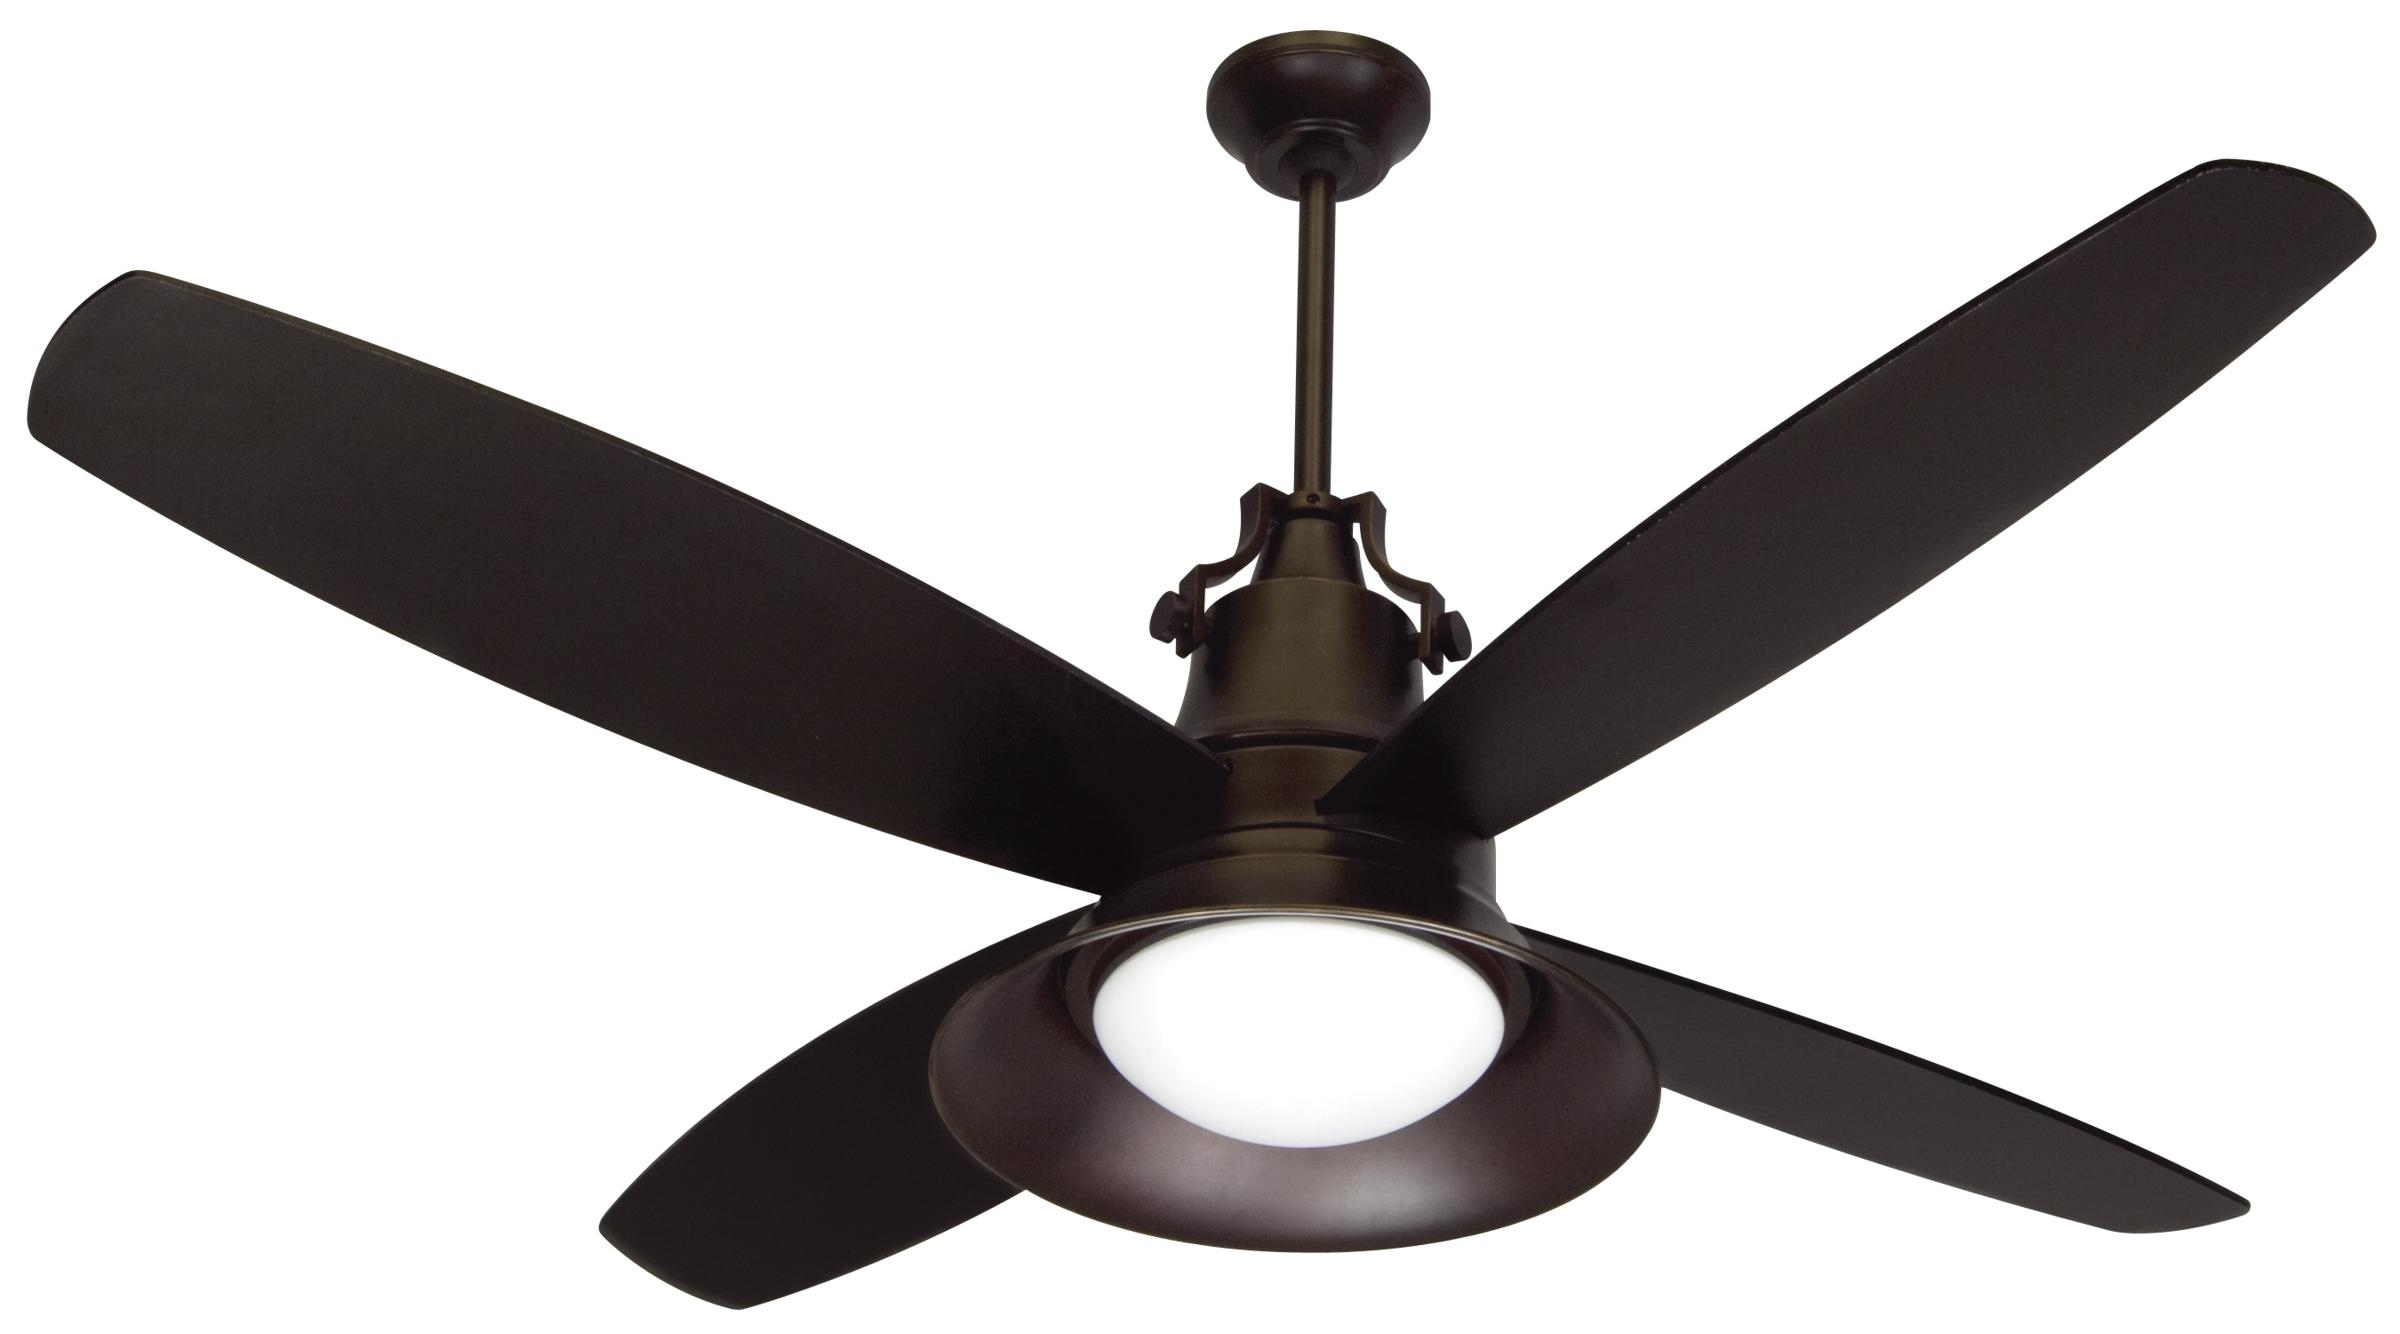 Most Popular Ceiling: Amazing Black Industrial Ceiling Fan Large Industrial Throughout Industrial Outdoor Ceiling Fans With Light (View 13 of 20)